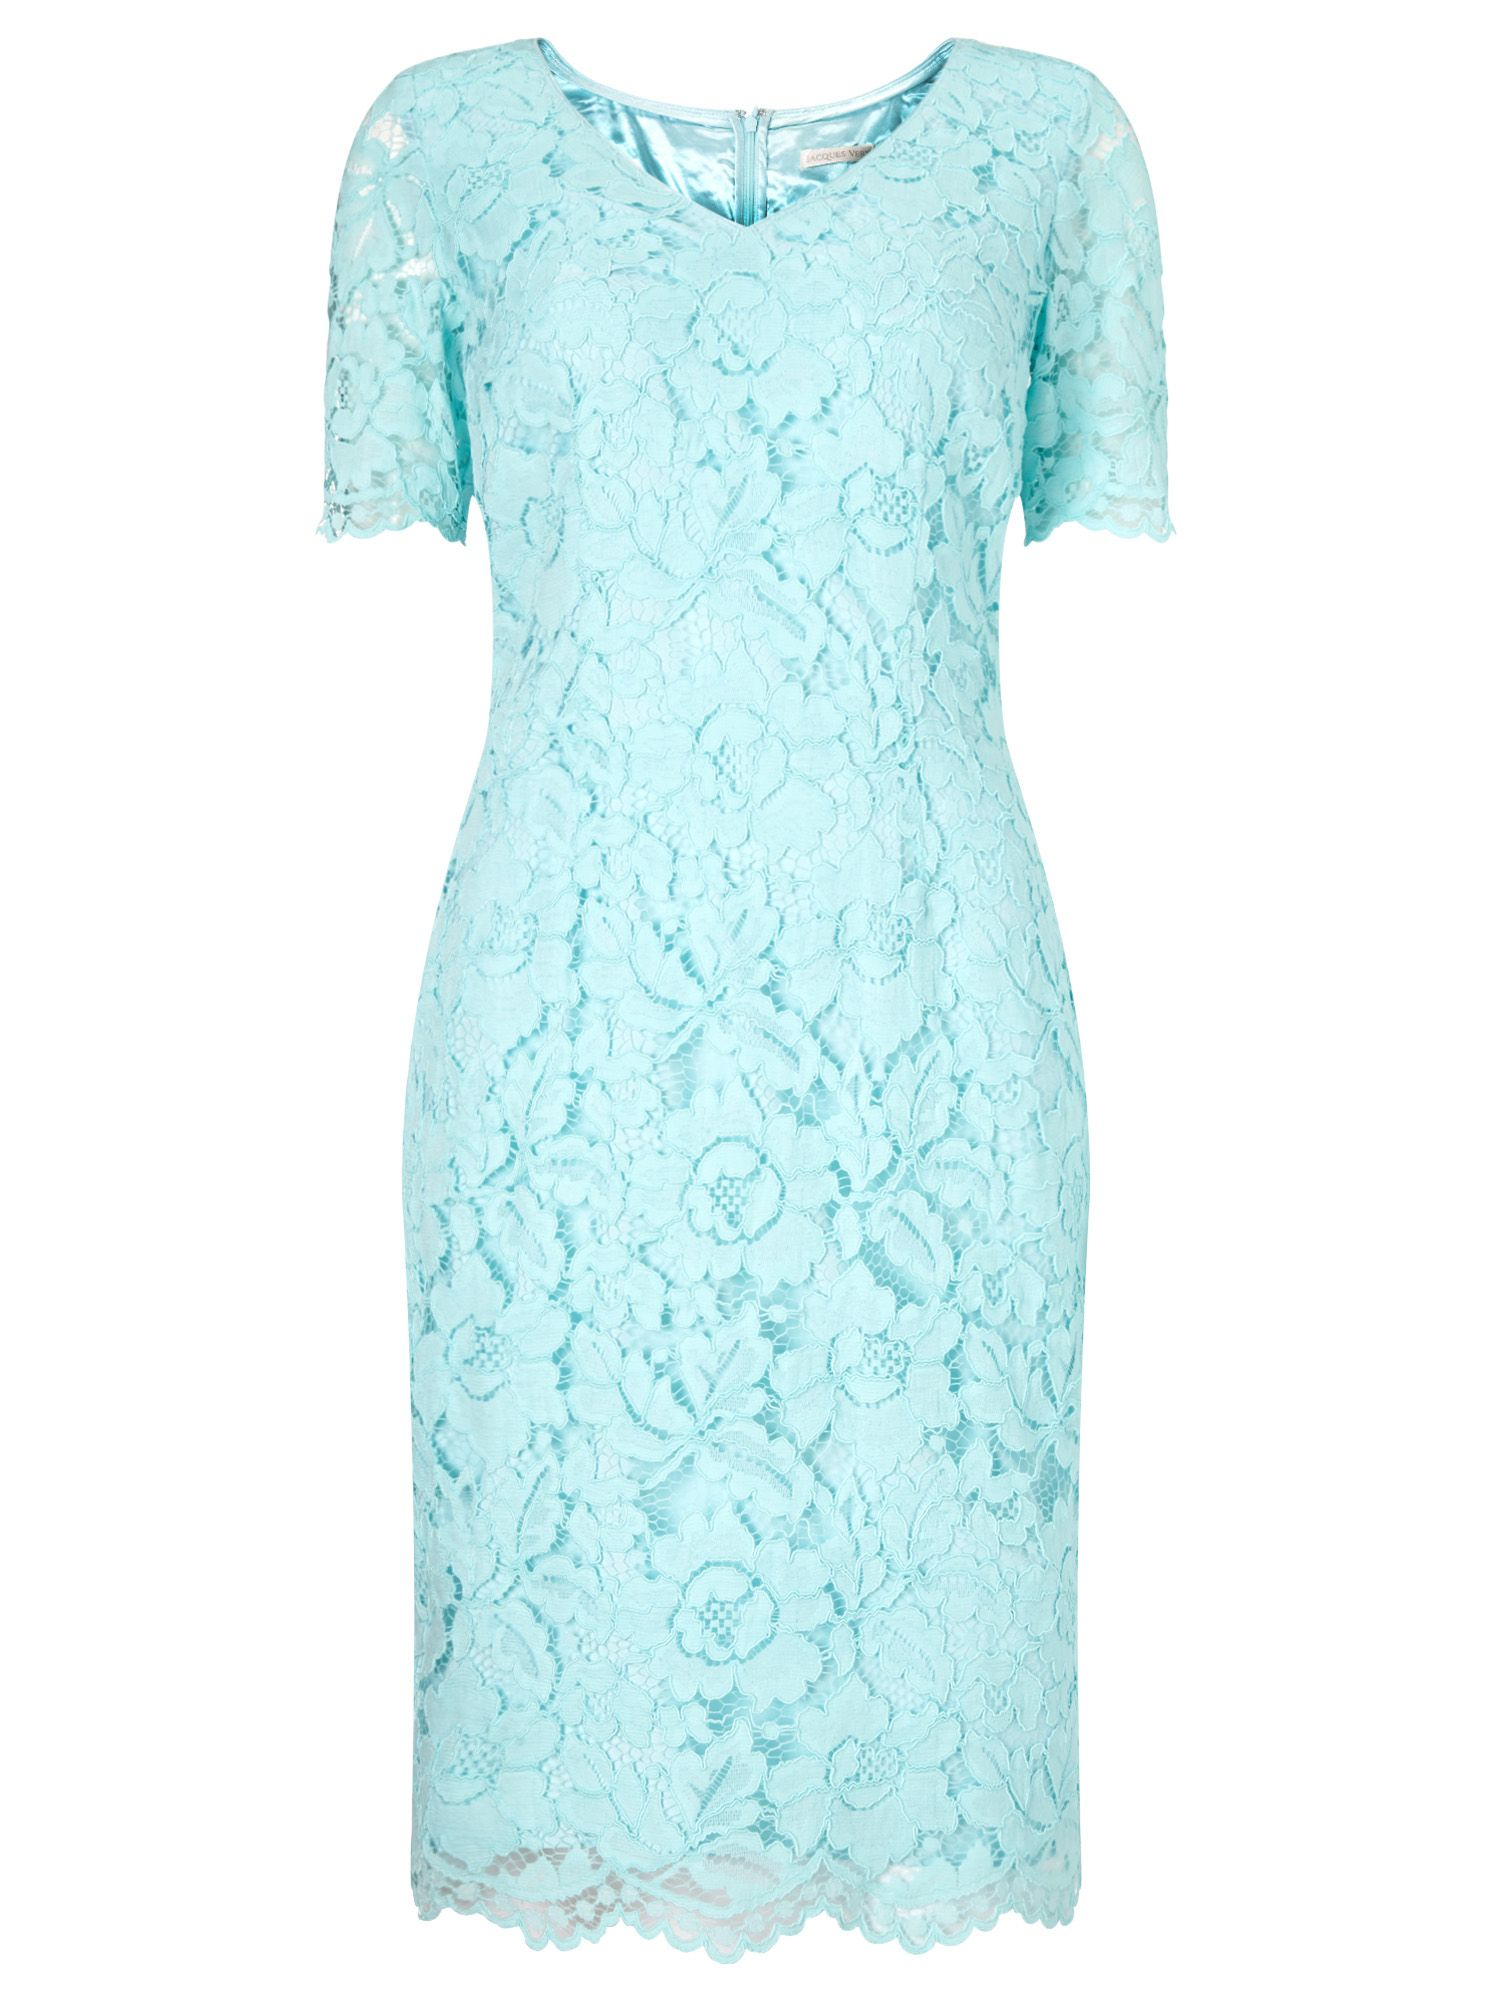 Unusual Jacques Vert Dresses Mother Of The Bride Contemporary ...